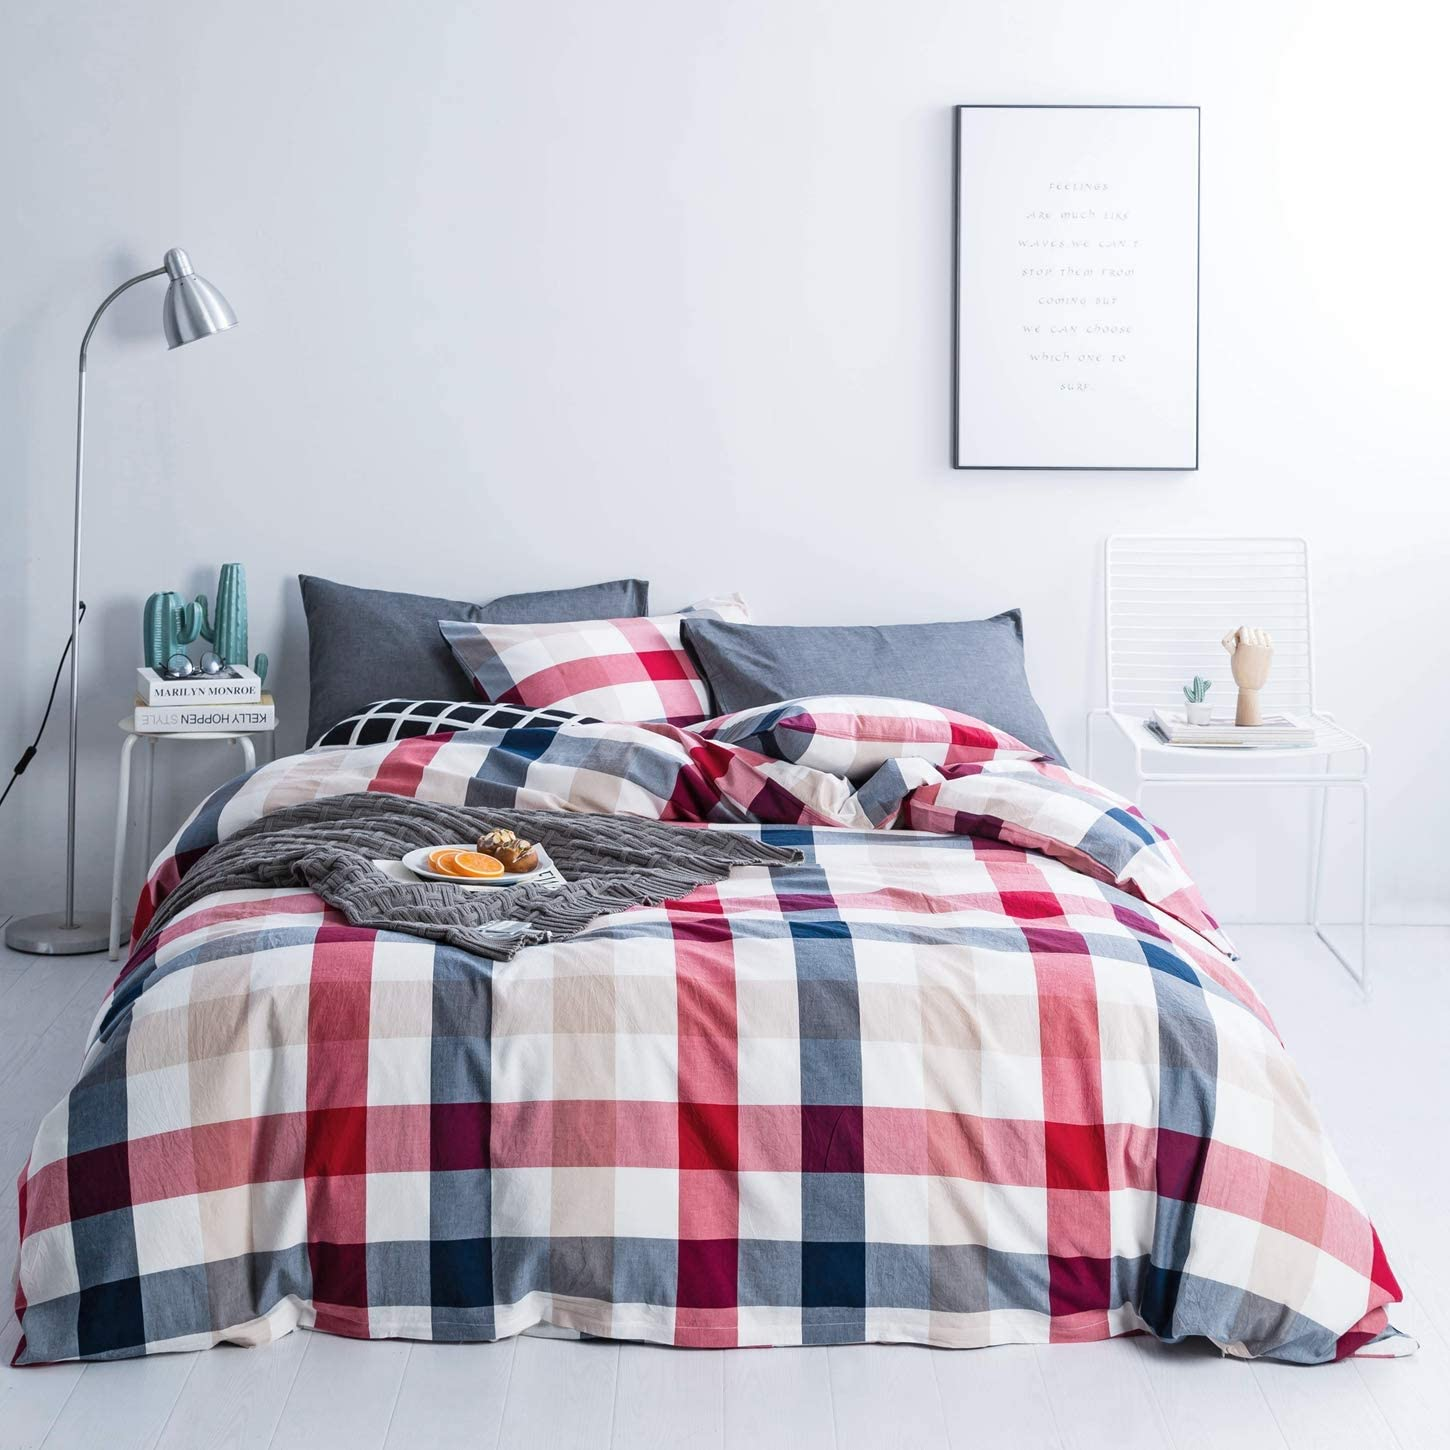 SUSYBAO 3 Pieces Duvet Cover Set Tucson Mall Size King Fees free!! 100% Washed Re Cotton